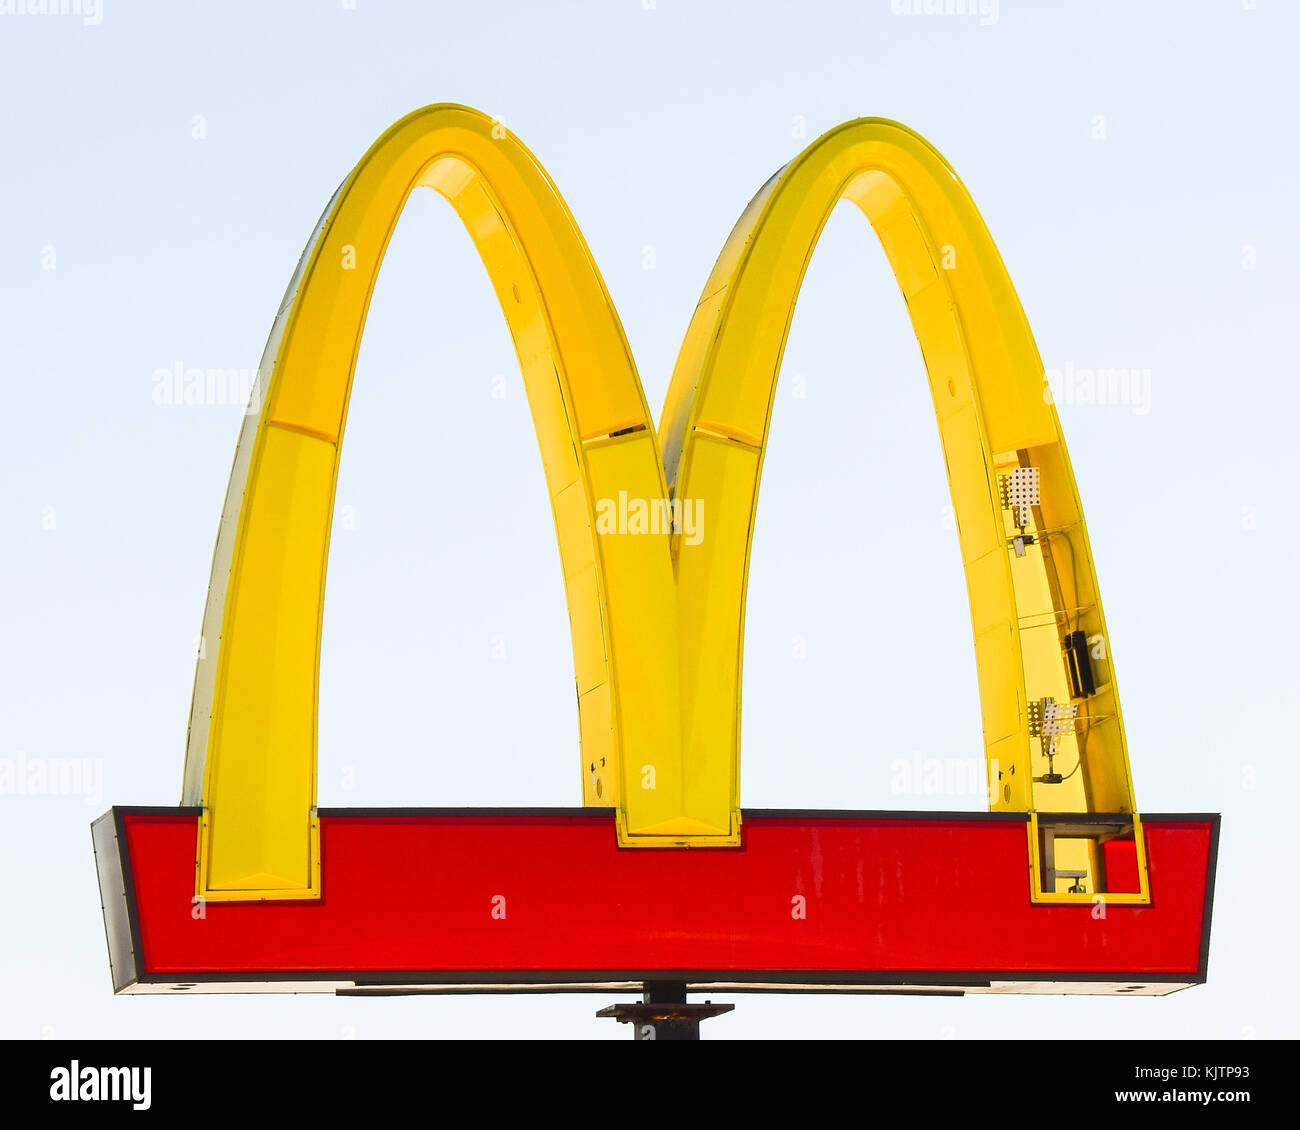 McDonald's iconic Golden Arches with broken panels from a wind storm. - Stock Image